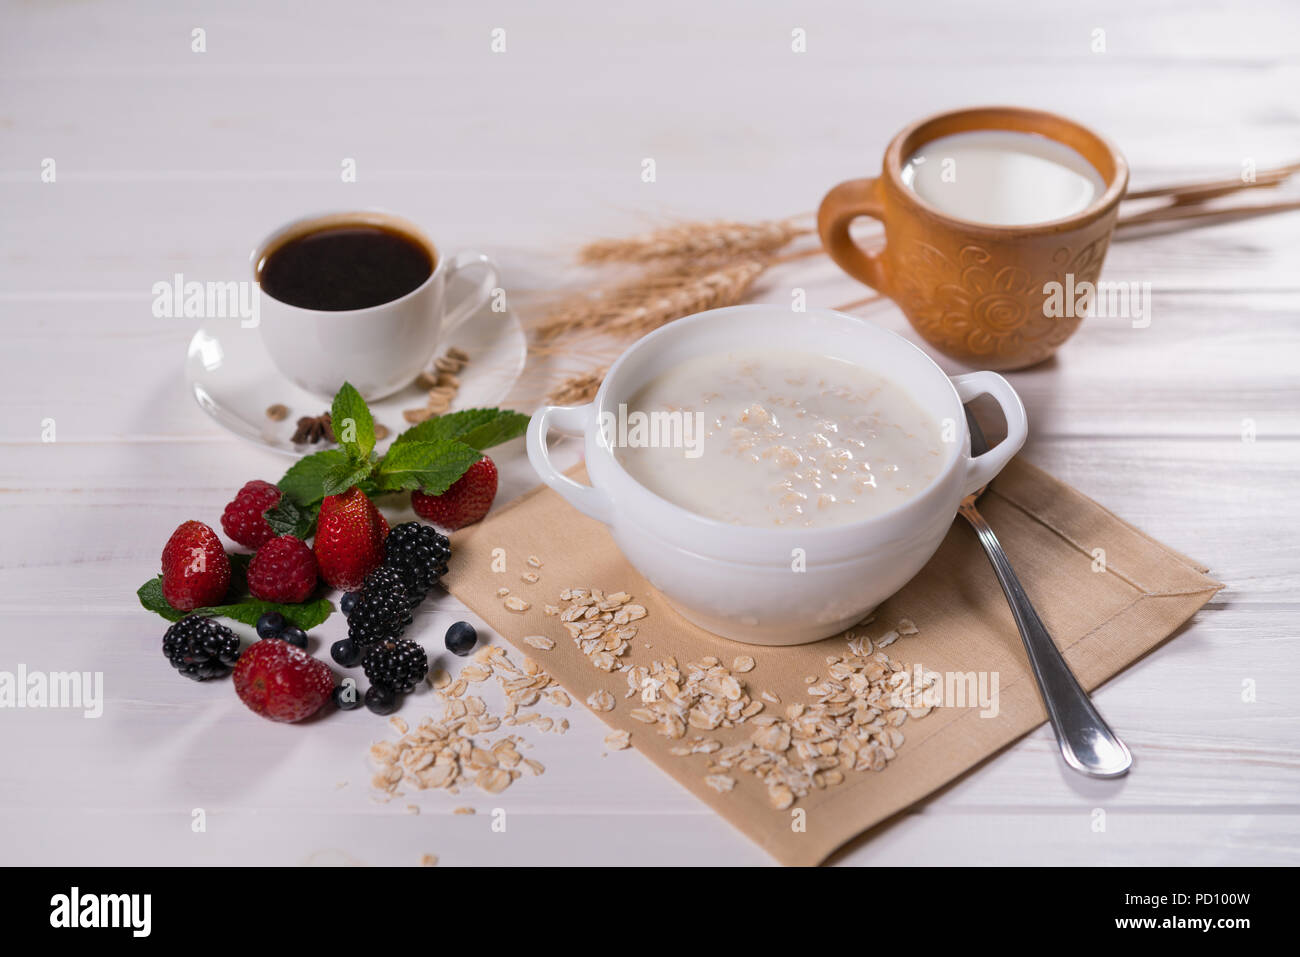 Oatmeal Porridge With Fruits And Cup Of Coffee On Breakfast Table Stock Photo Alamy